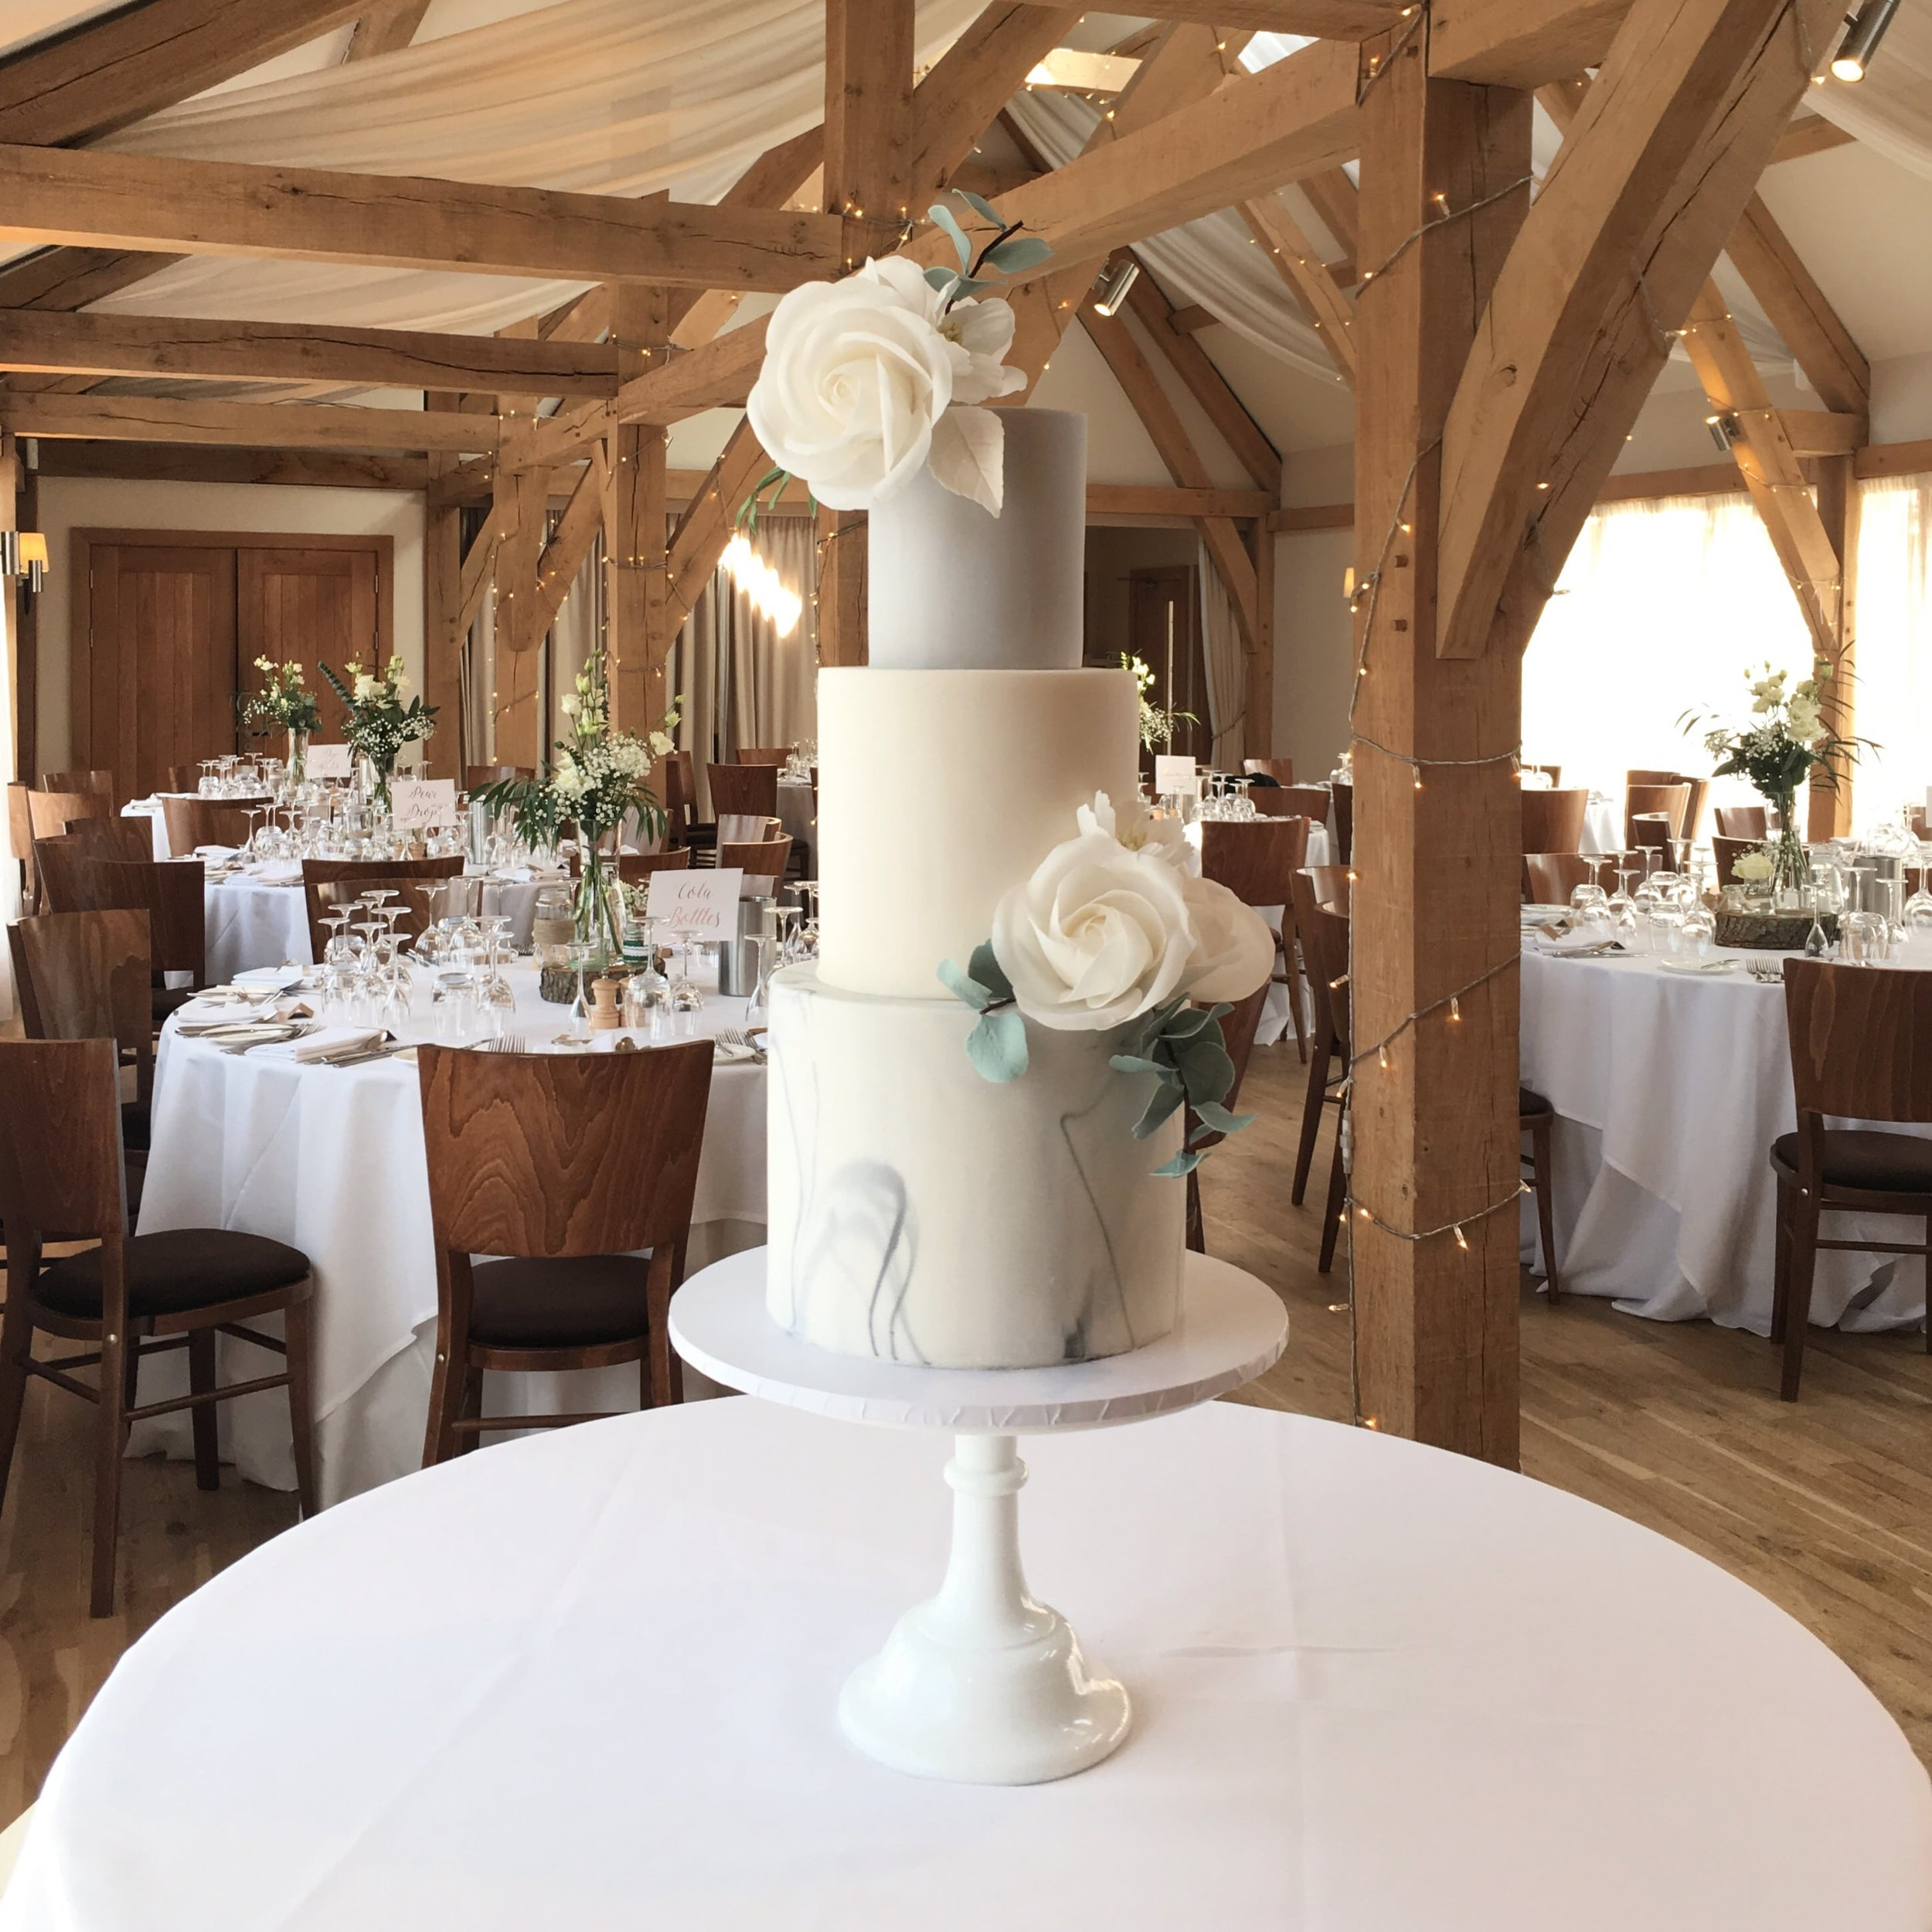 Modern wedding cake by Meadowsweet Cakes, Bassmead Manor Barns wedding cakes